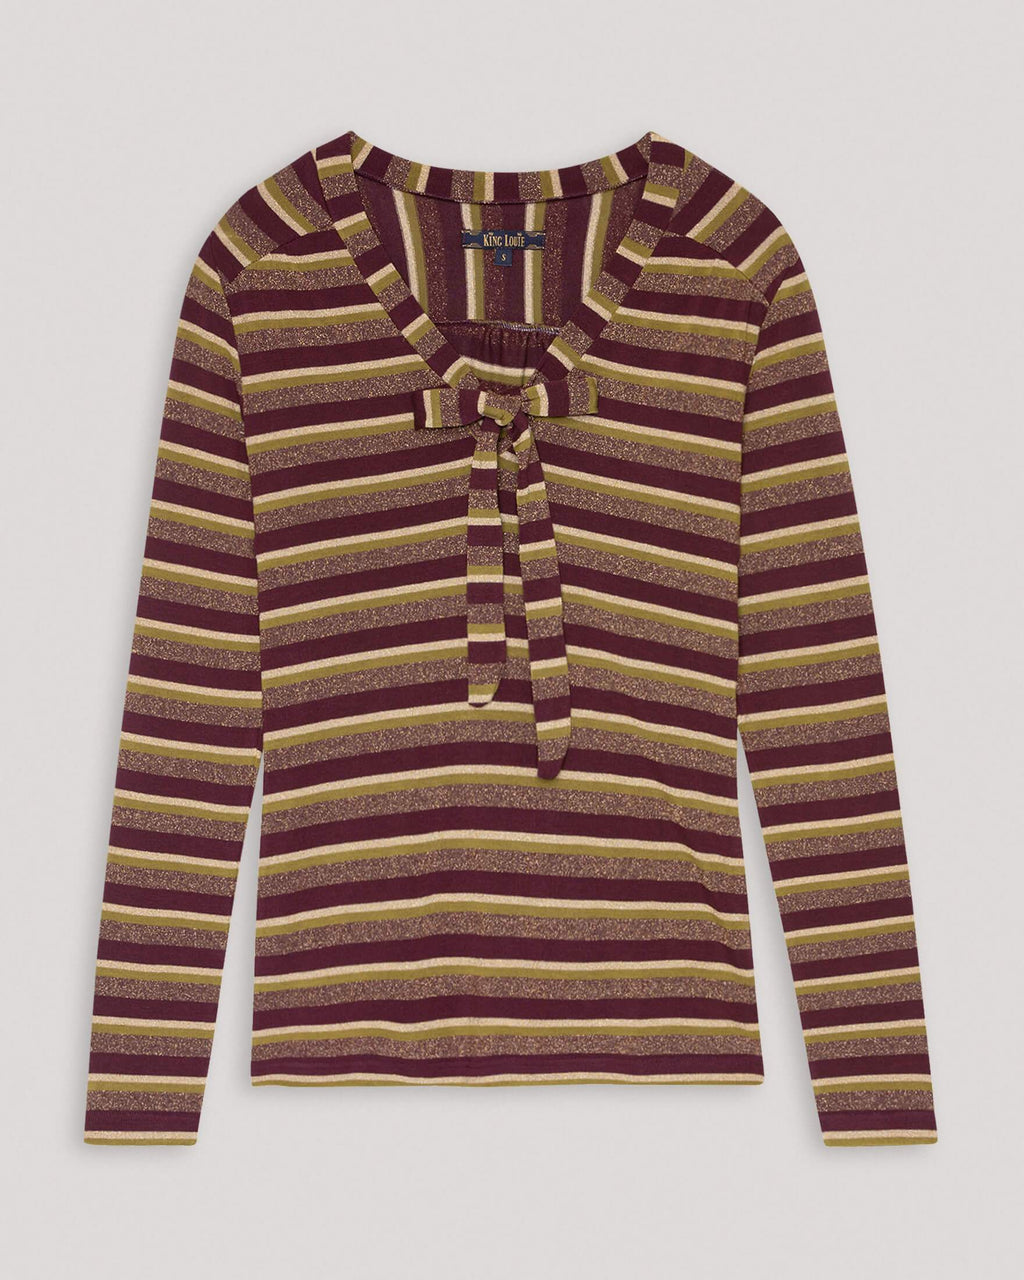 variant_1 | EN Brown Longsleeve shirt with stripes Women | DE Braunes Langarmshirt gestreift Damen